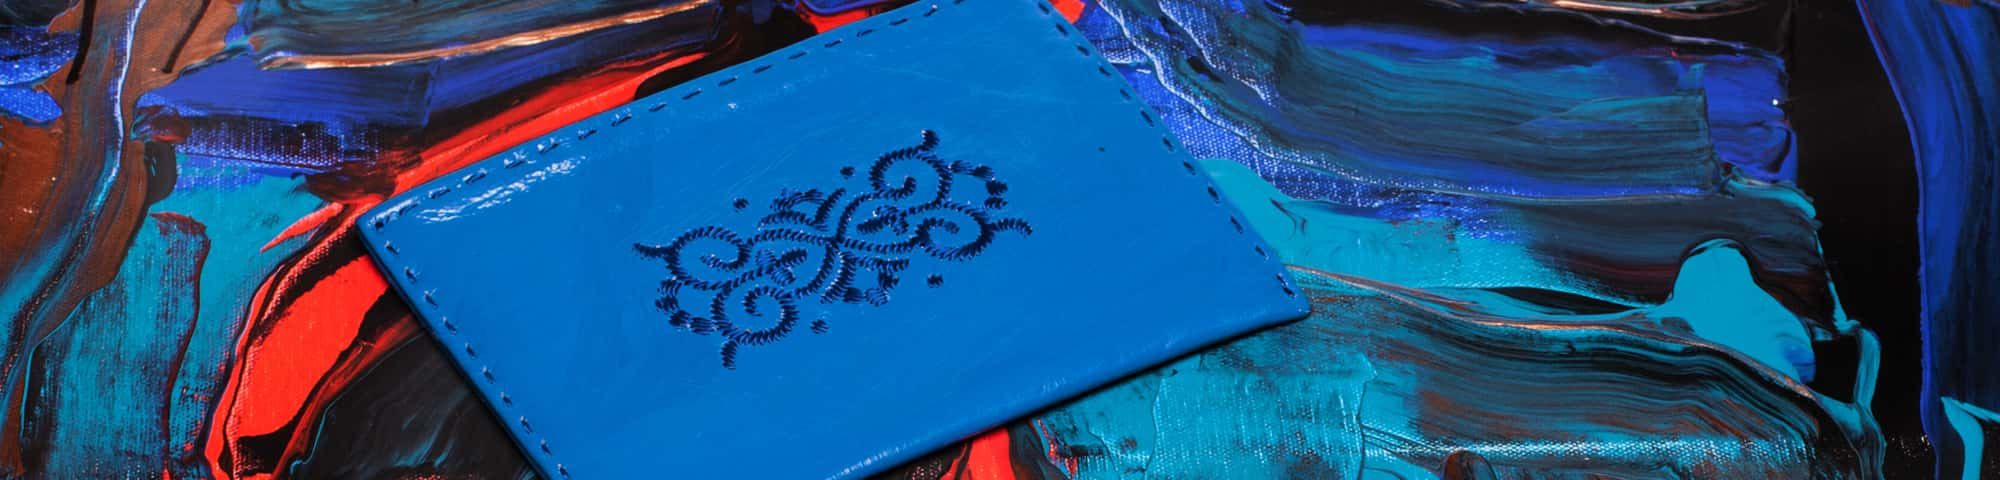 Handmade Leather Pouch by ABURY in Blue